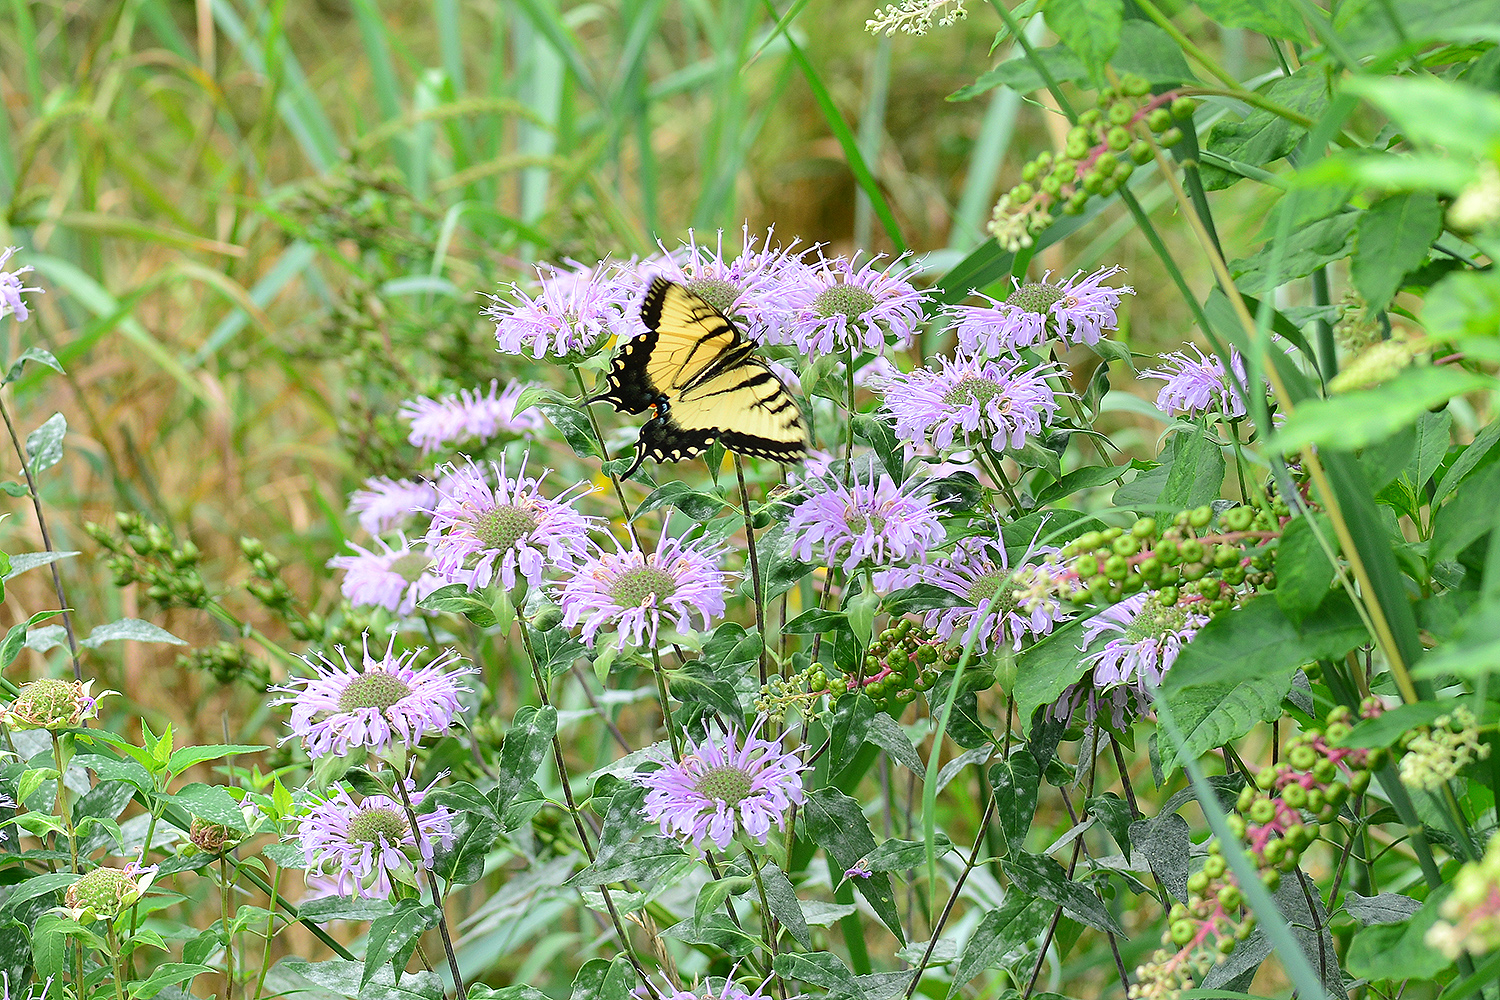 A swallowtail sips nectar from a bee balm patch in the West College Courtyard. Butterflies, bees and hummingbirds are attracted to the perennial, which grows in abundance at the garden.